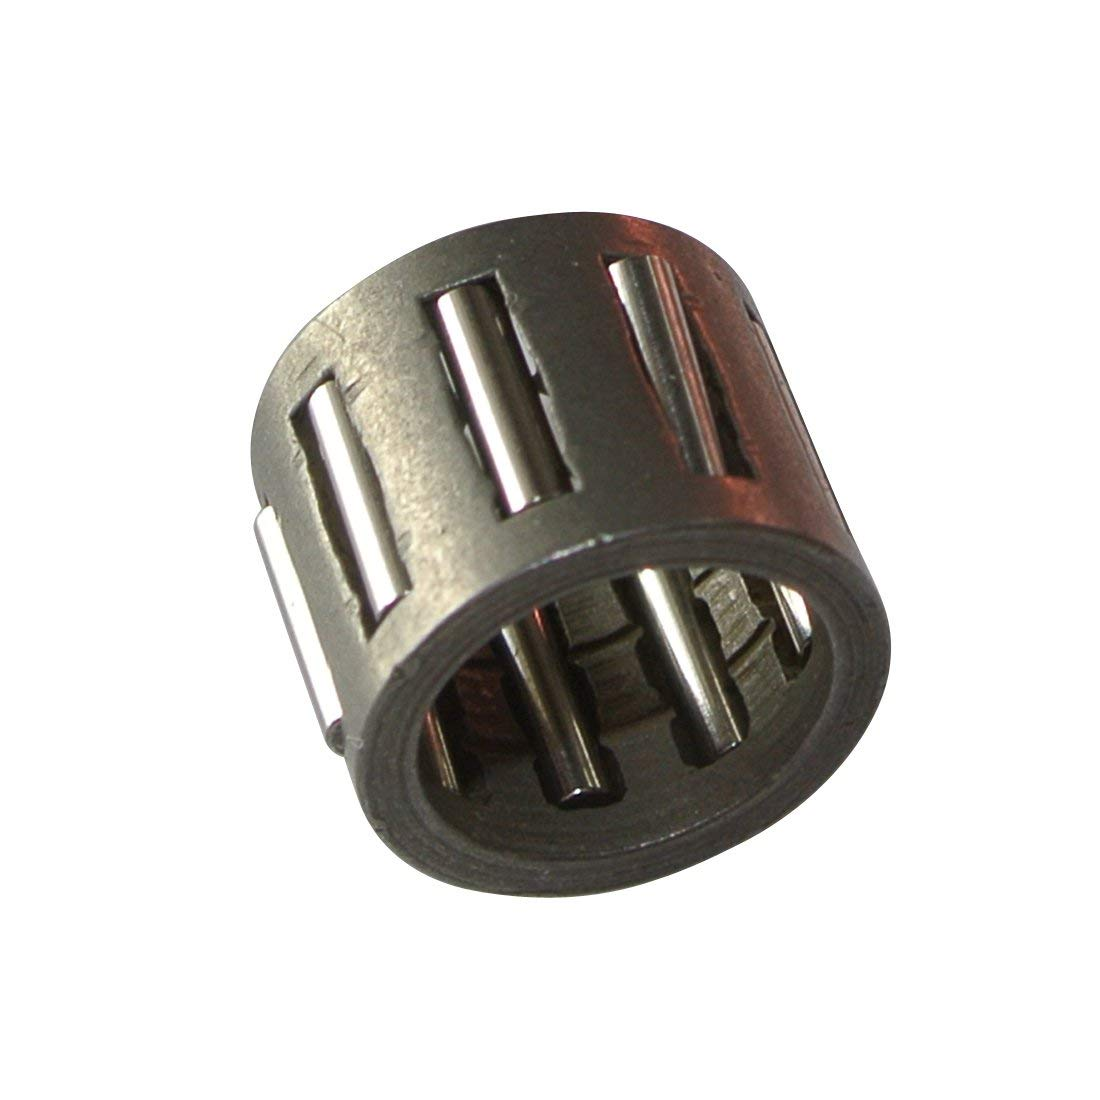 2 OD 1-5//8 ID Koyo B-268 Needle Roller Bearing Inch Full Complement Drawn Cup 1//2 Width 3900rpm Maximum Rotational Speed Open